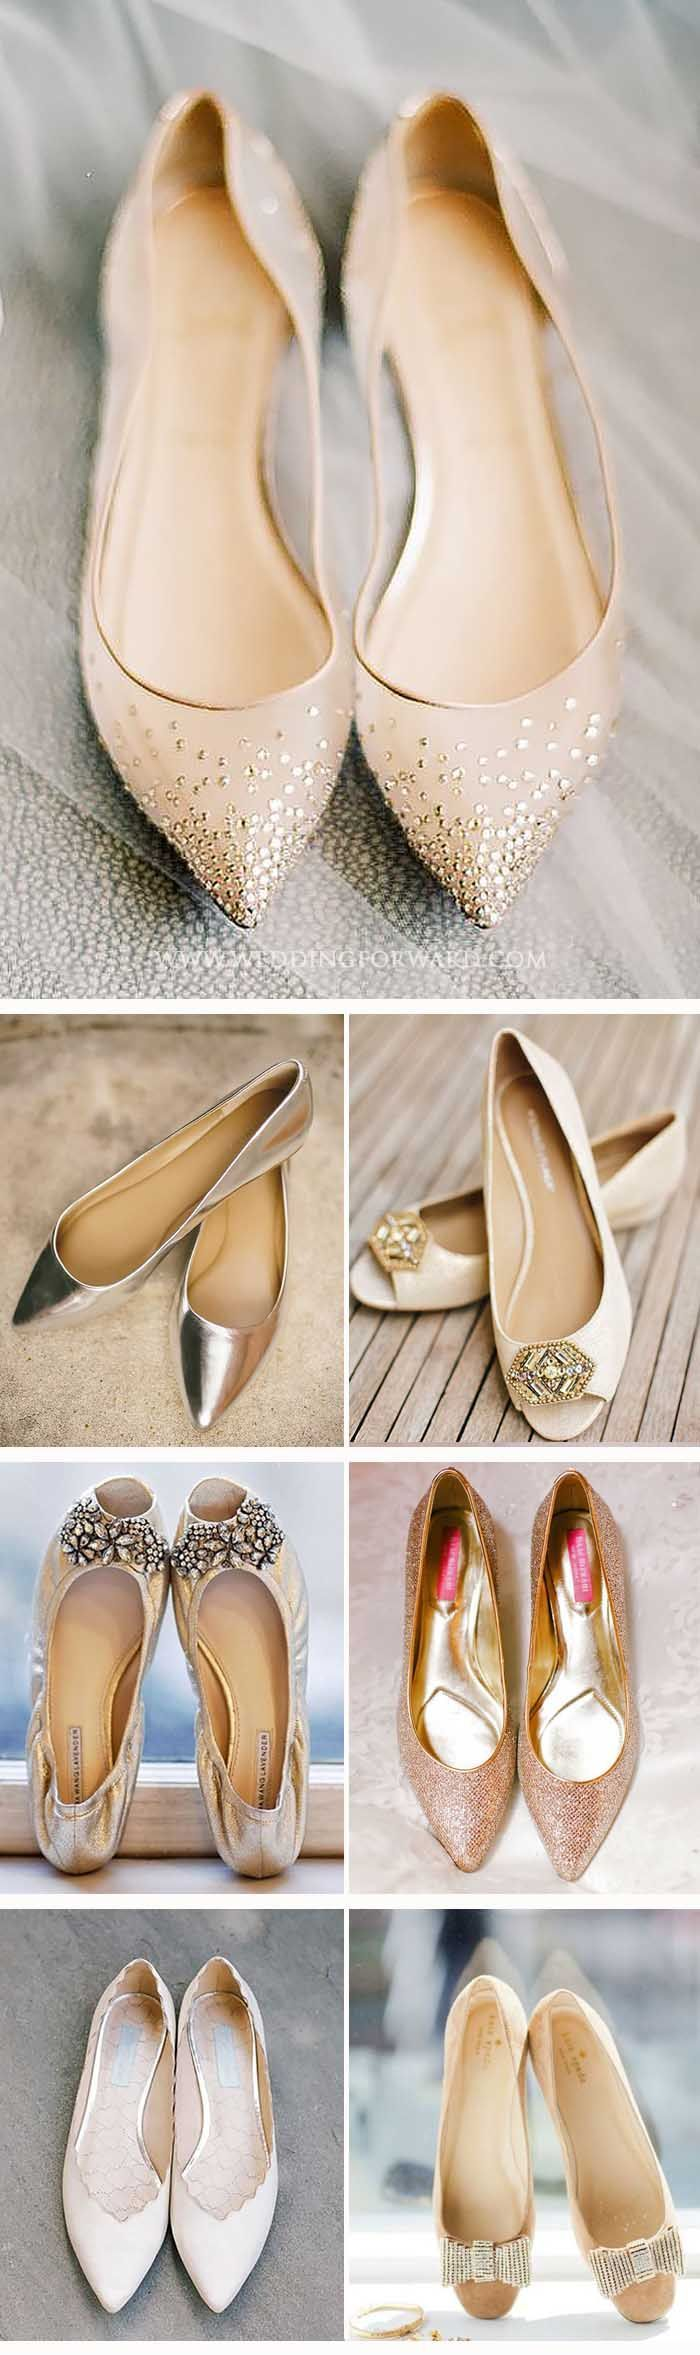 24 Flat Wedding Shoes For The Love Of Comfort And Style We Presented